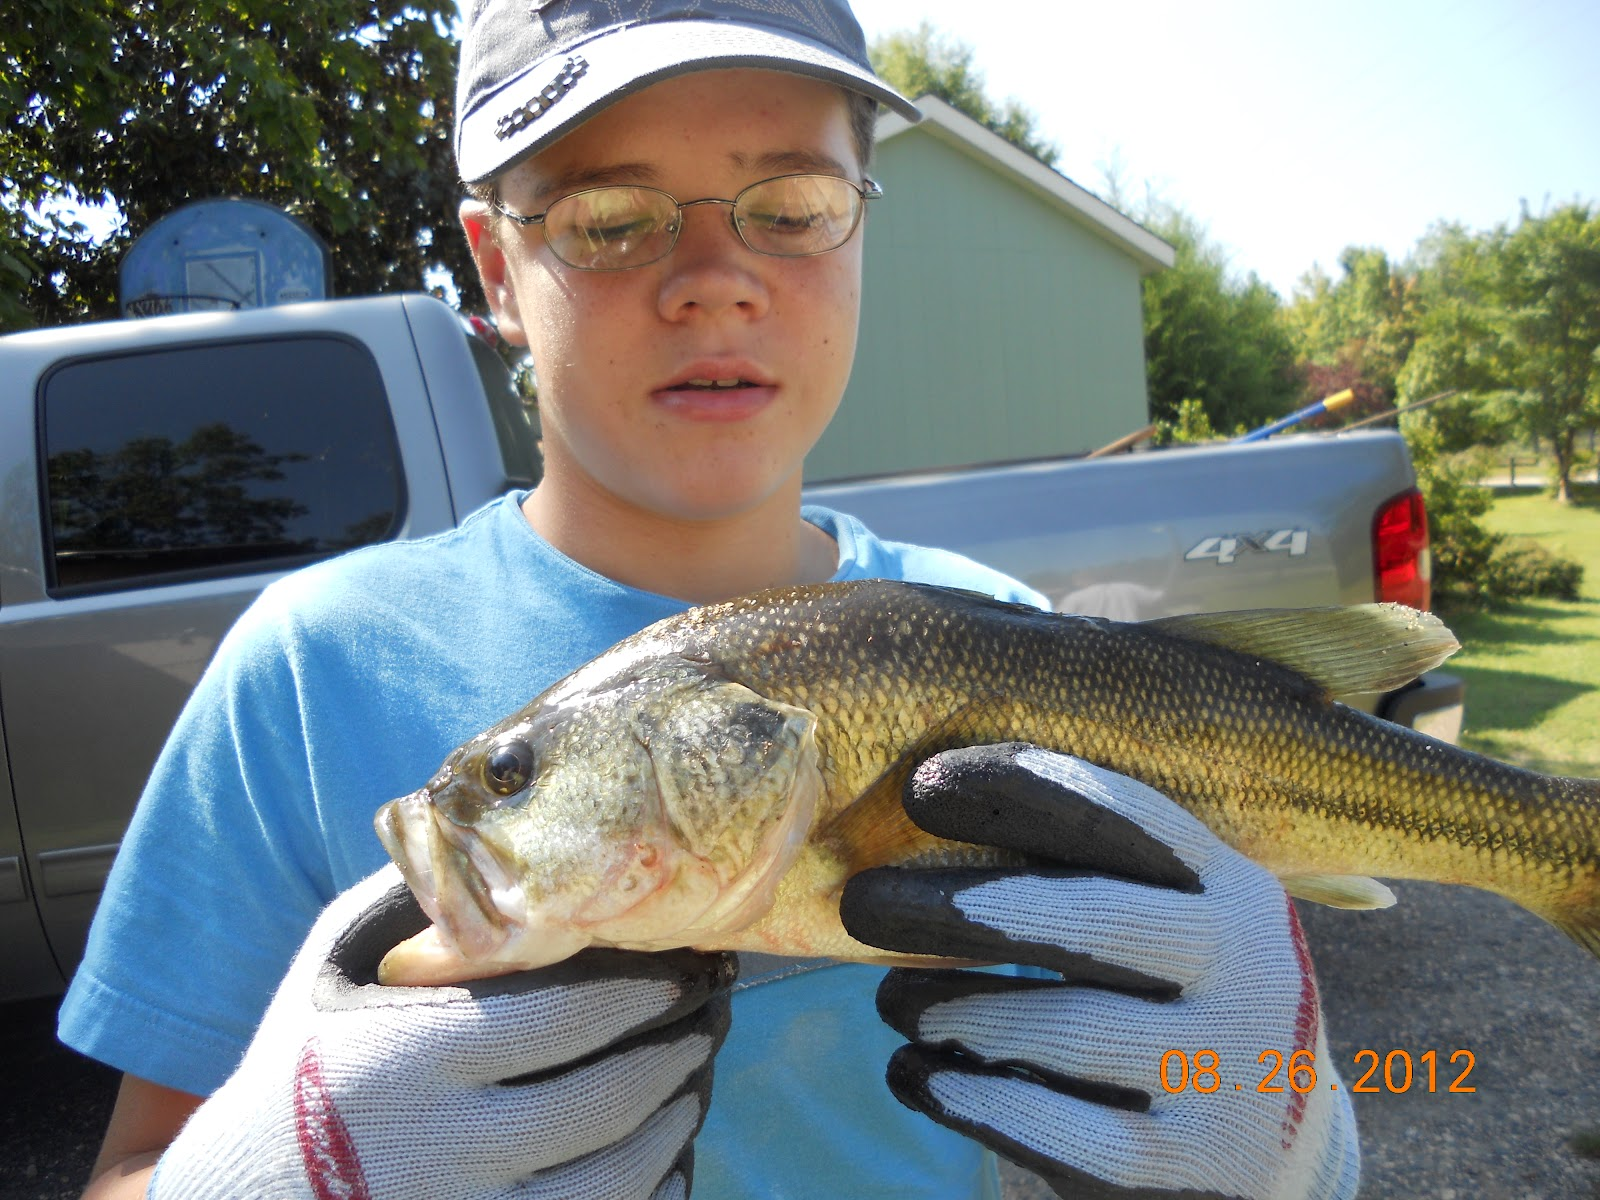 Charlotte 39 s web sorry charlie for Bass fishing yard sale